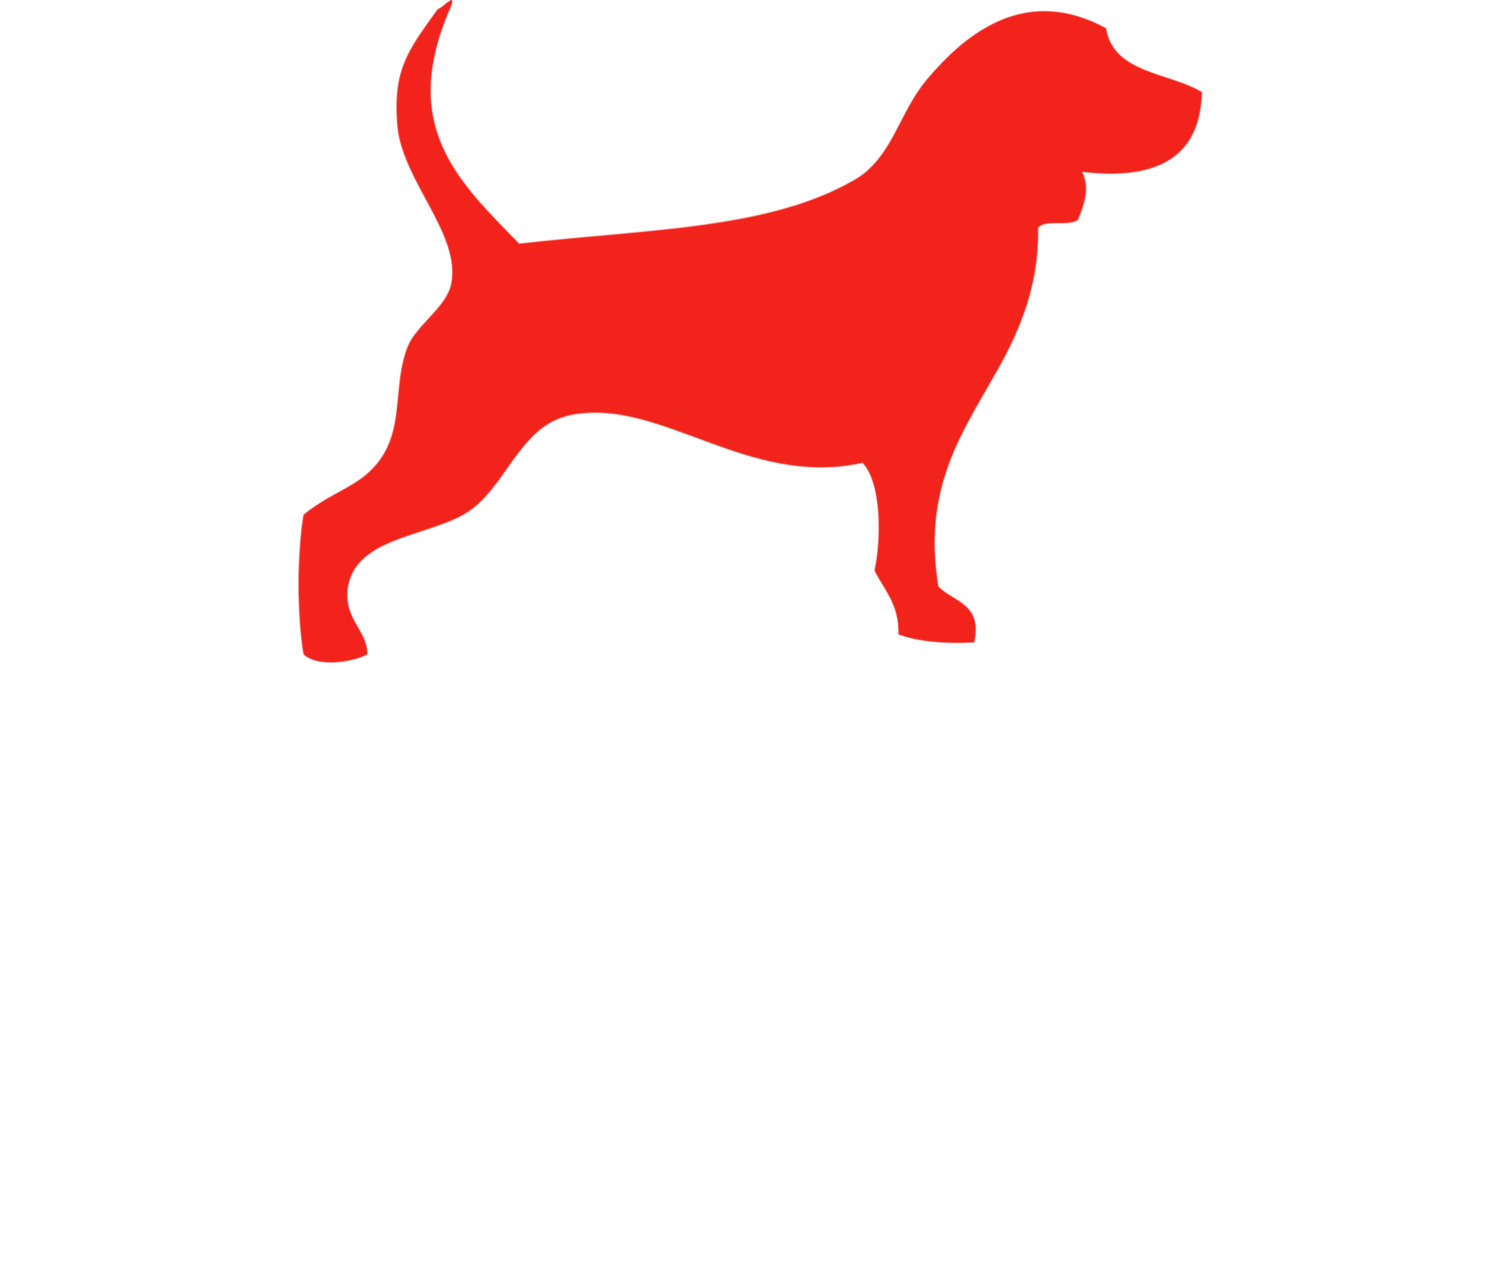 wonder dog studio